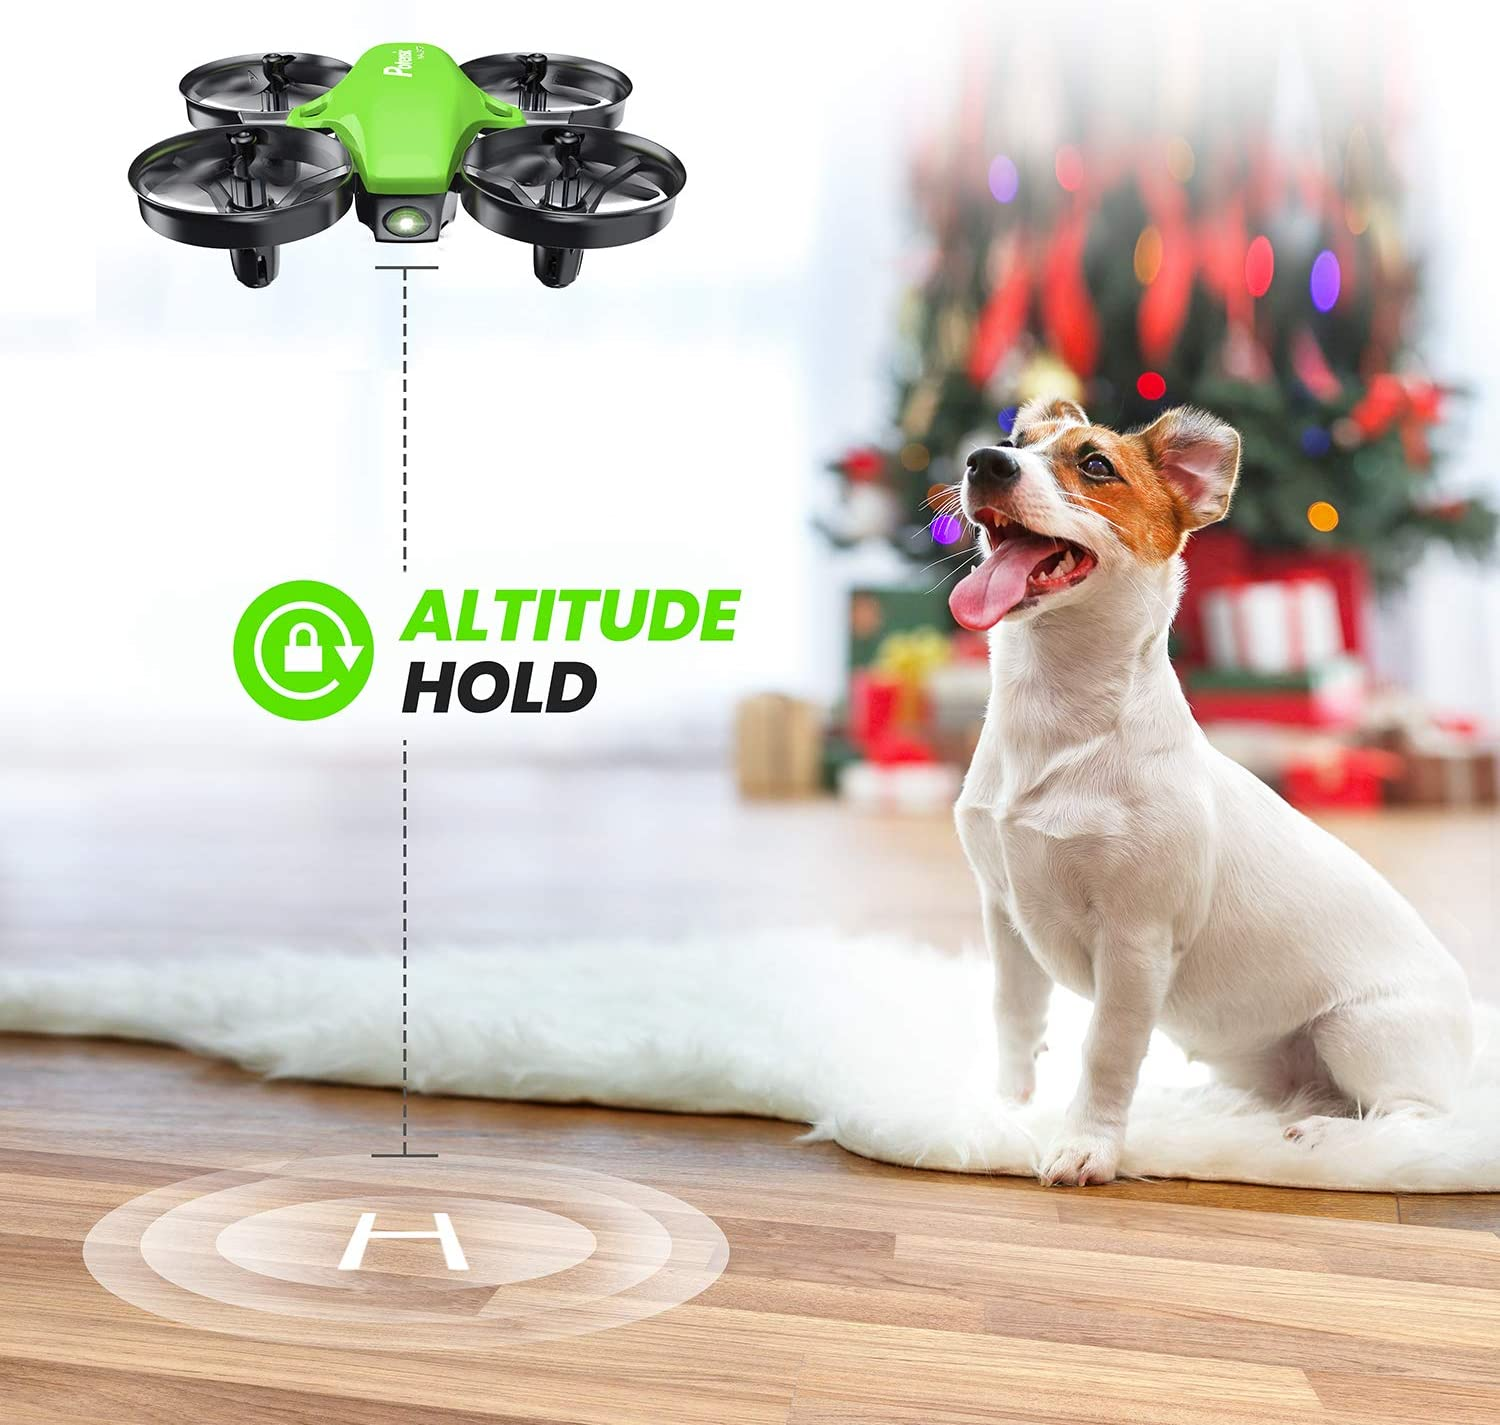 potensic toy drones for kids